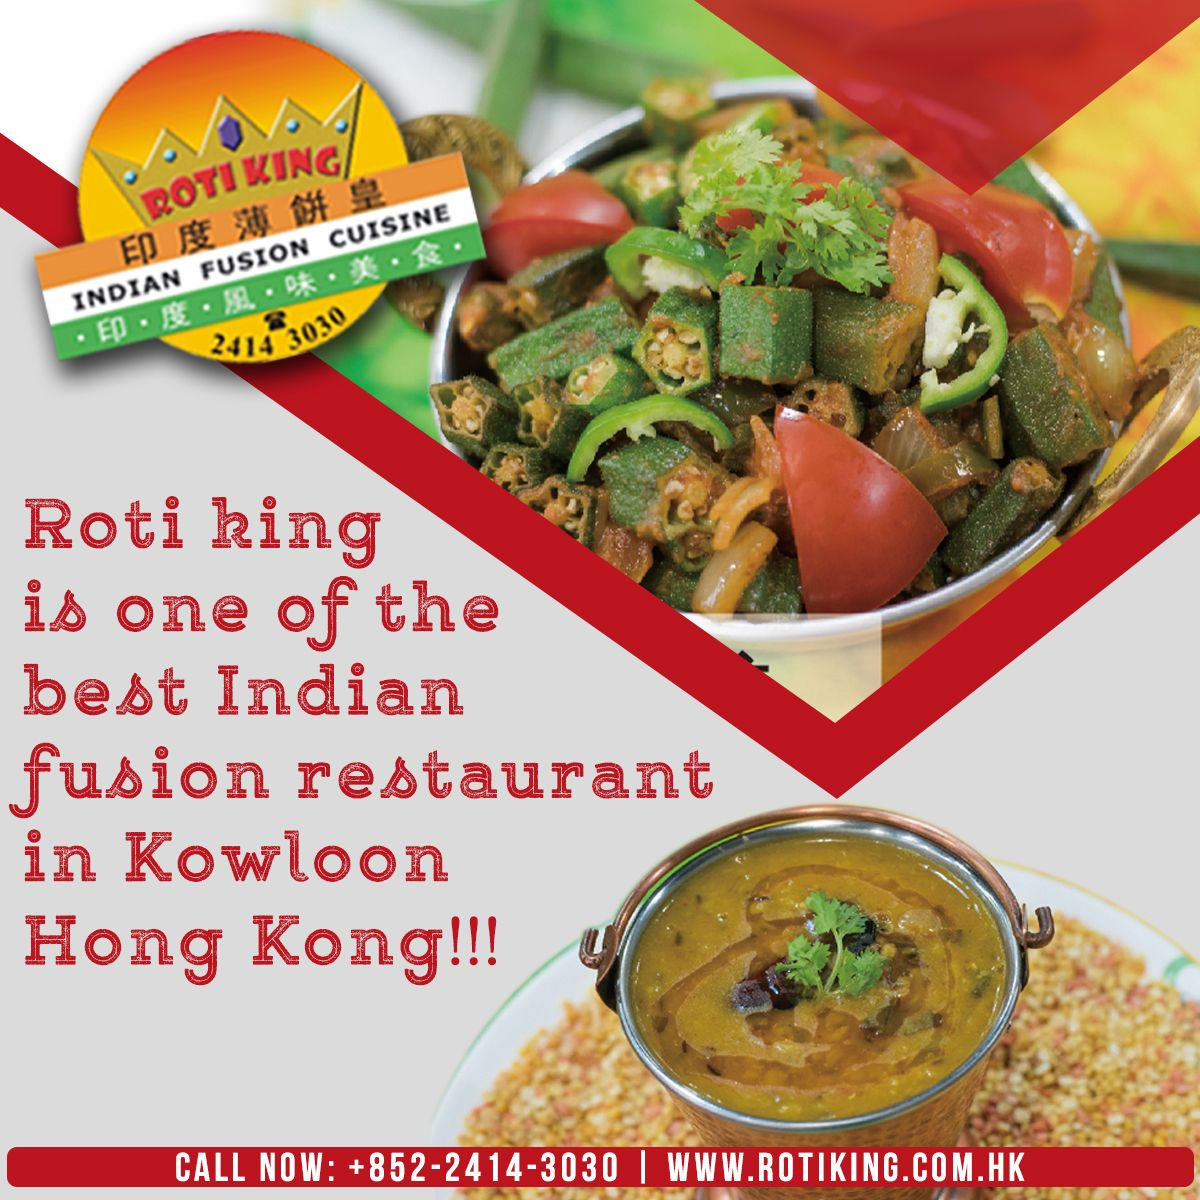 Roti King Is One Of The Best Indian Fusion Restaurant In Kowloon Hongkong Food Should Taste Good Indian Food Recipes Halal Recipes